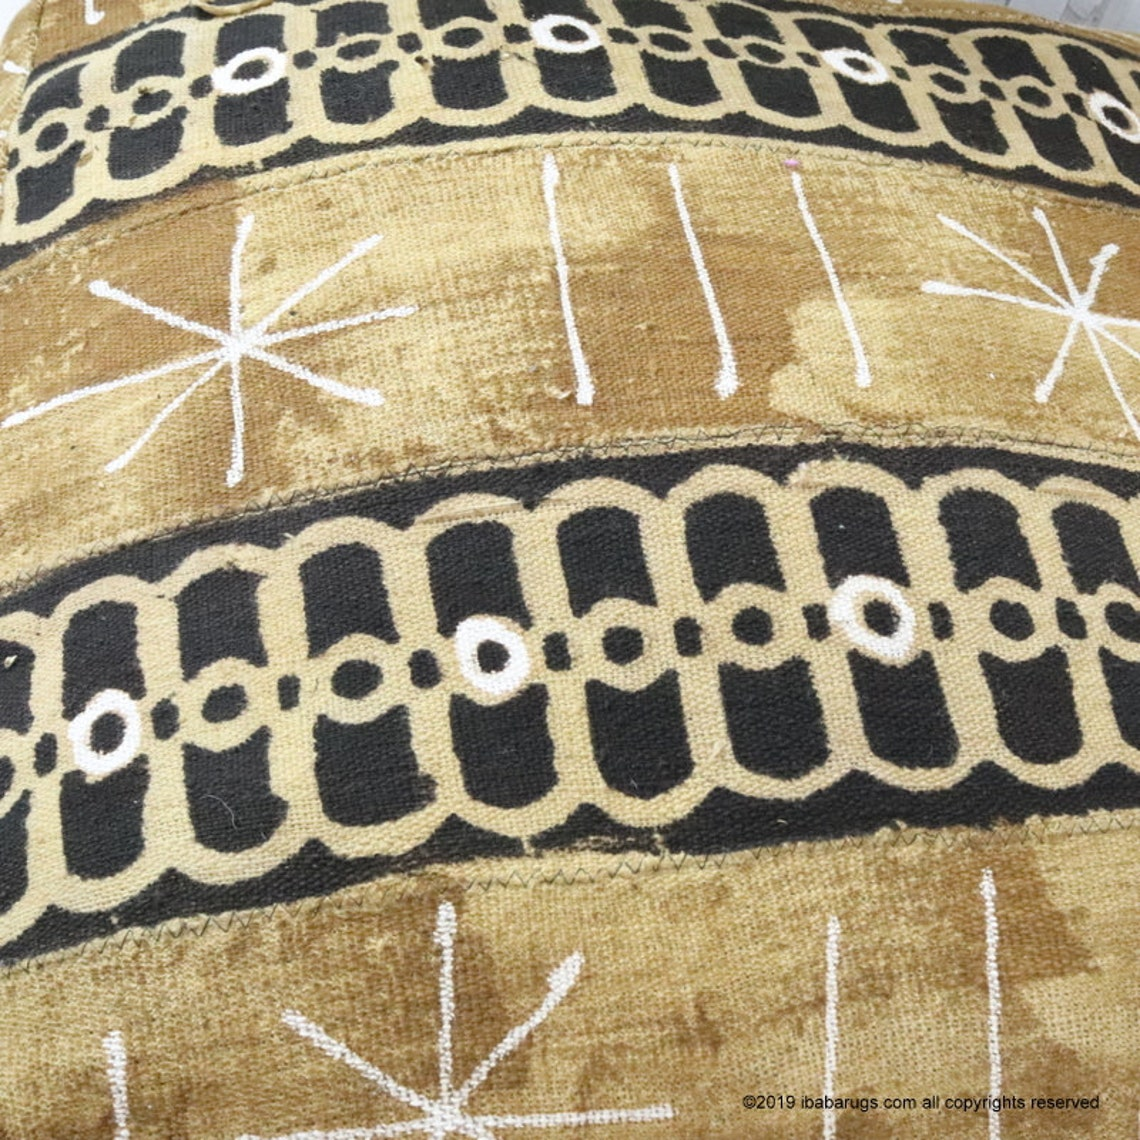 "20%off Mudcloth Pouf Cover, Mudcloth floor pillow, African Mud Cloth, African Pouf,  size 24"" x 24""x8"""